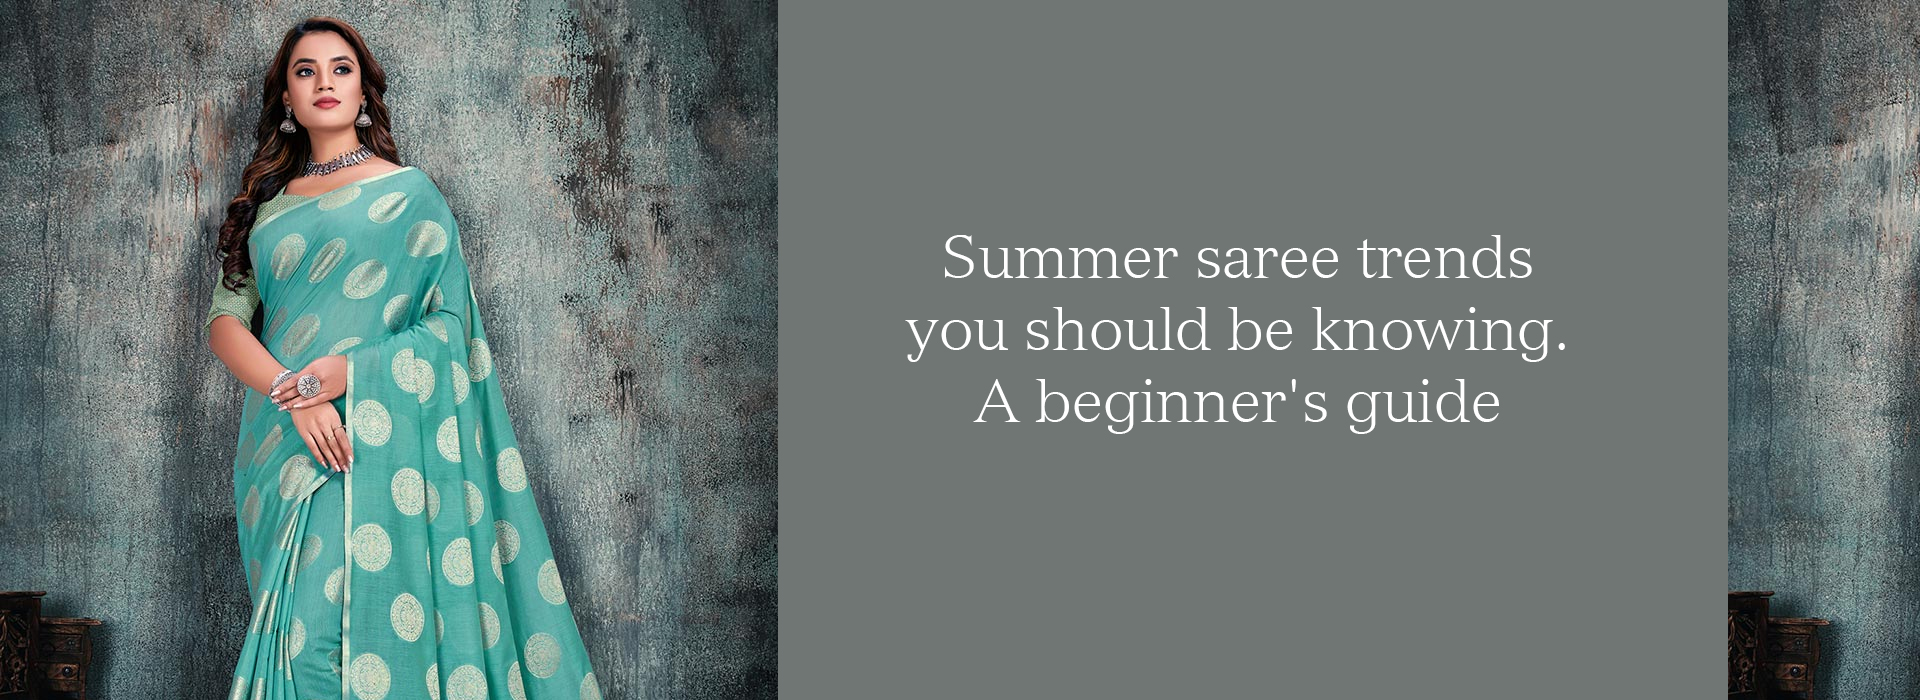 Summer Saree Trends You Should Be Knowing. A Beginner's Guide